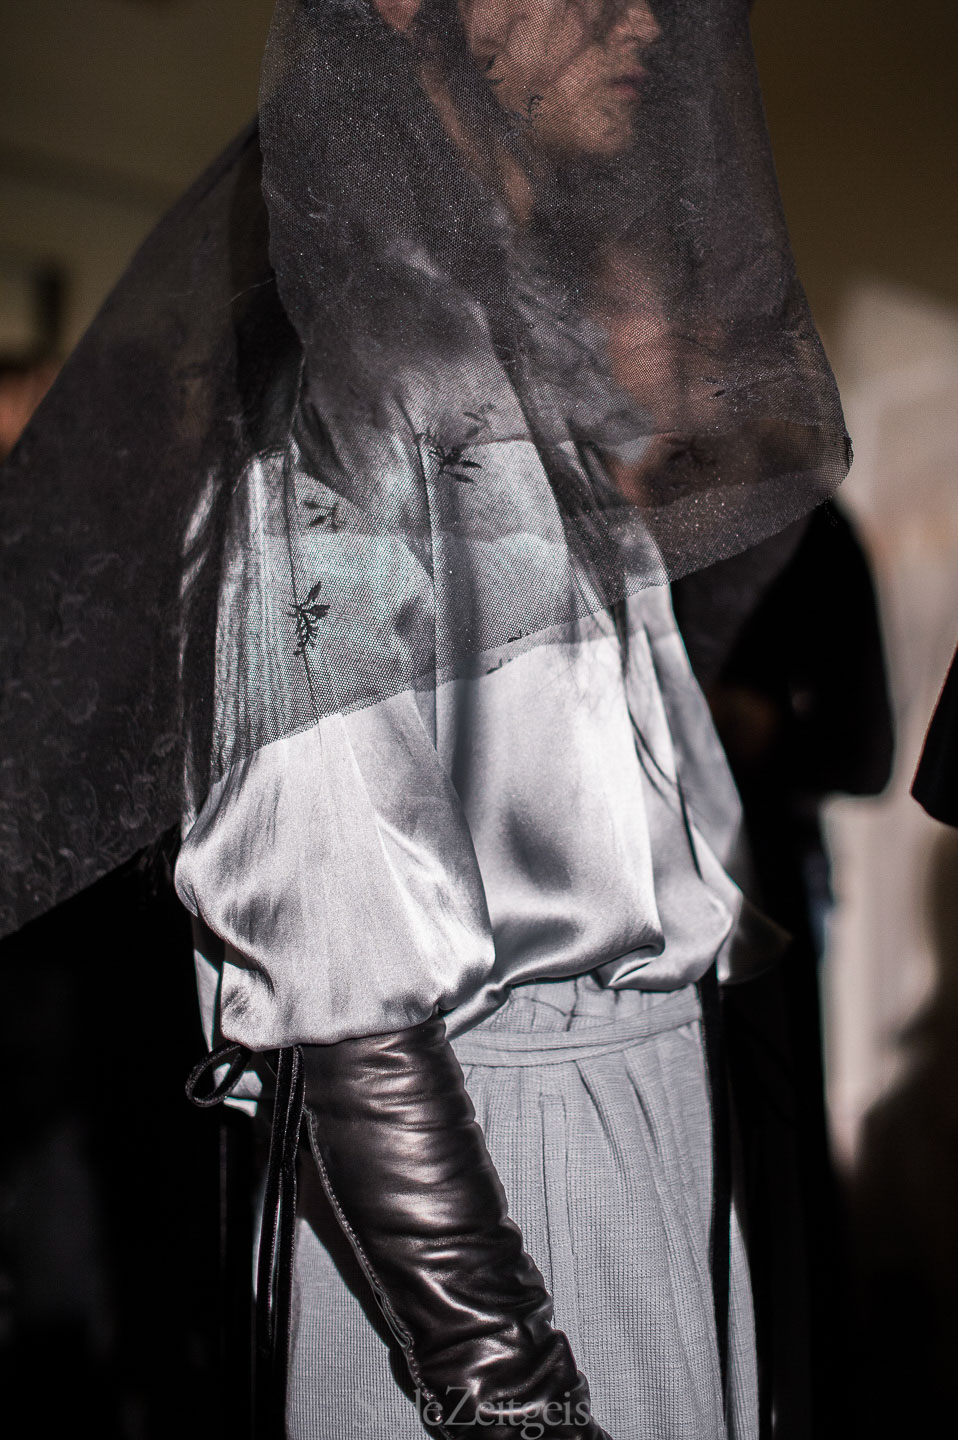 StyleZeitgeist Ann Demeulemeester F/W17 Women's - Paris Backstage Fashion    StyleZeitgeist Ann Demeulemeester F/W17 Women's - Paris Backstage Fashion    StyleZeitgeist Ann Demeulemeester F/W17 Women's - Paris Backstage Fashion    StyleZeitgeist Ann Demeulemeester F/W17 Women's - Paris Backstage Fashion    StyleZeitgeist Ann Demeulemeester F/W17 Women's - Paris Backstage Fashion    StyleZeitgeist Ann Demeulemeester F/W17 Women's - Paris Backstage Fashion    StyleZeitgeist Ann Demeulemeester F/W17 Women's - Paris Backstage Fashion    StyleZeitgeist Ann Demeulemeester F/W17 Women's - Paris Backstage Fashion    StyleZeitgeist Ann Demeulemeester F/W17 Women's - Paris Backstage Fashion    StyleZeitgeist Ann Demeulemeester F/W17 Women's - Paris Backstage Fashion    StyleZeitgeist Ann Demeulemeester F/W17 Women's - Paris Backstage Fashion    StyleZeitgeist Ann Demeulemeester F/W17 Women's - Paris Backstage Fashion    StyleZeitgeist Ann Demeulemeester F/W17 Women's - Paris Backstage Fashion    StyleZeitgeist Ann Demeulemeester F/W17 Women's - Paris Backstage Fashion